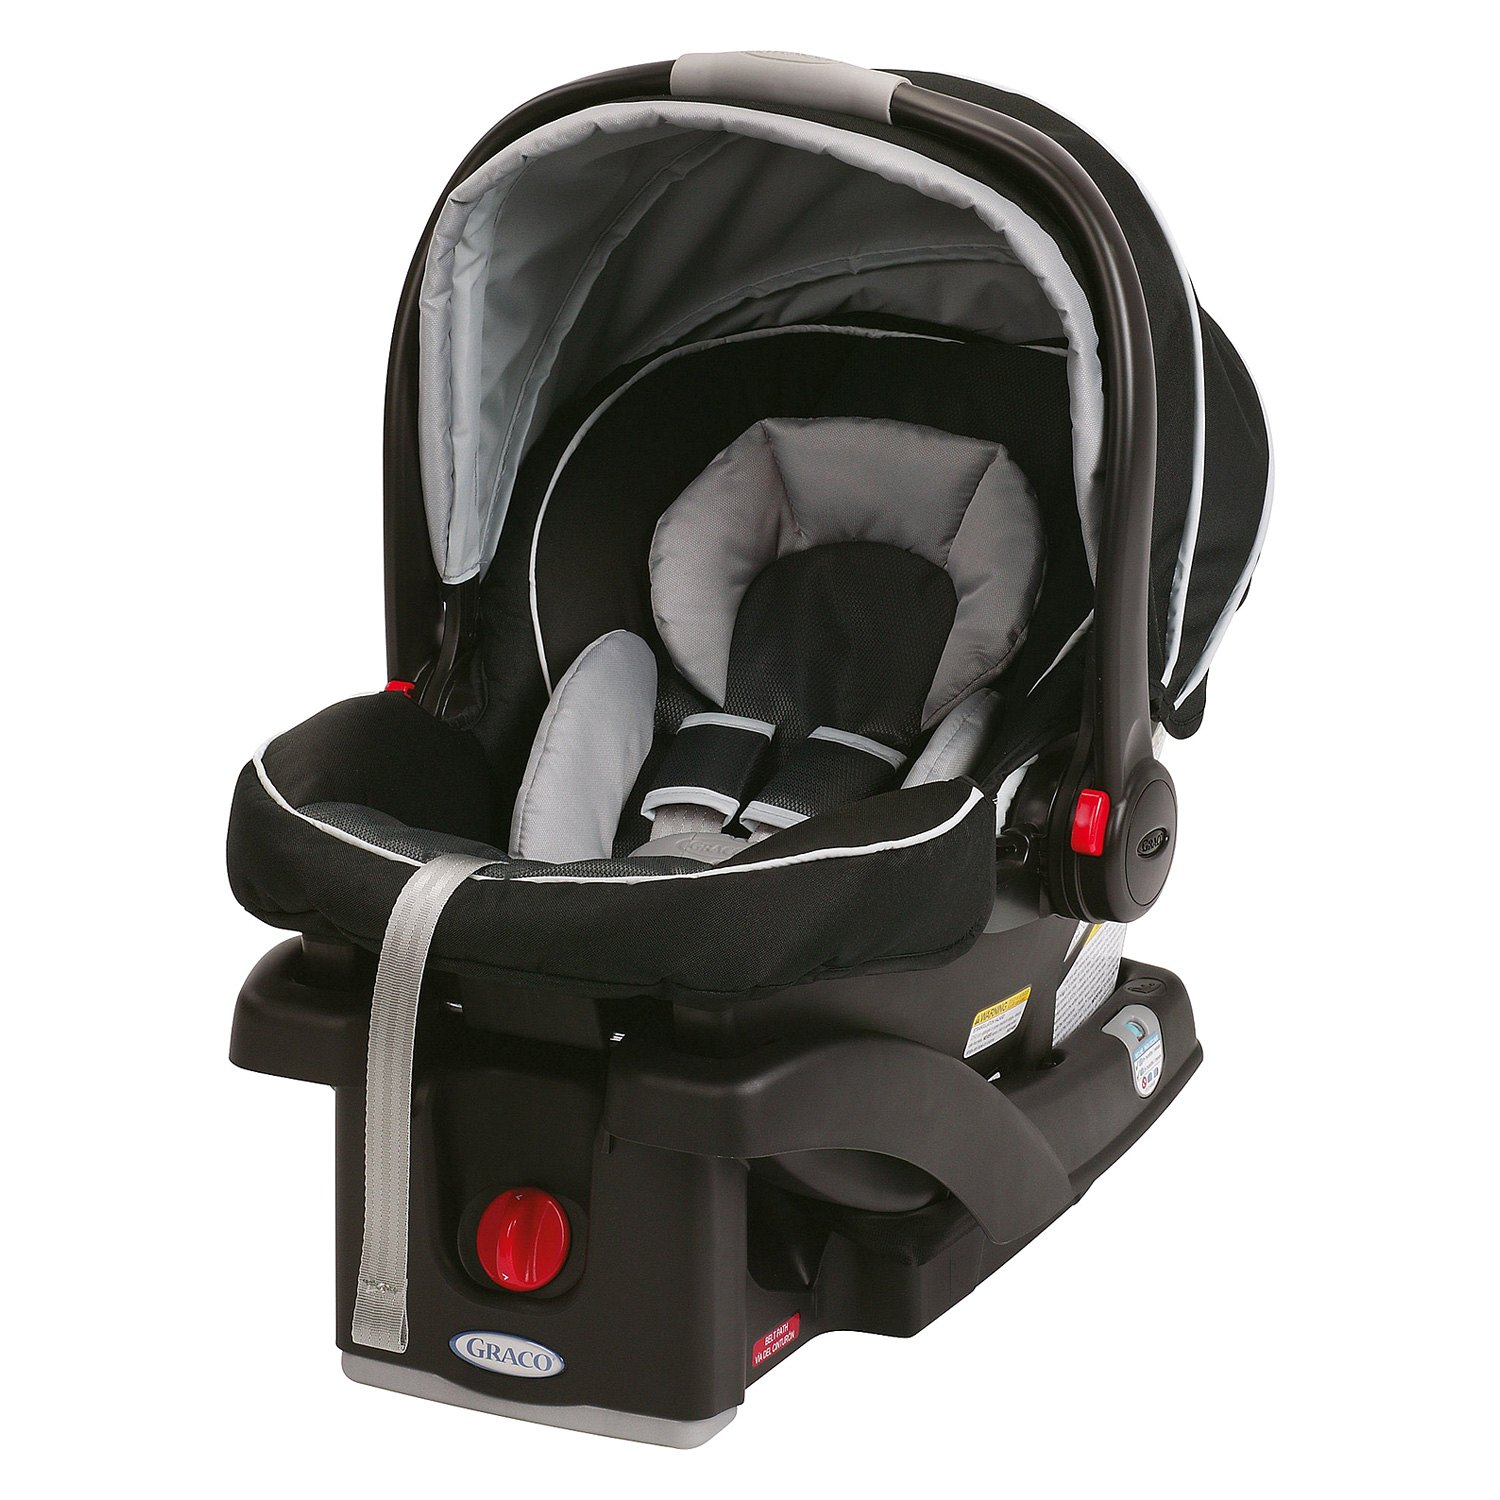 Graco Baby SnugRide™ Gotham Style Connect 35 Infant Car Seat